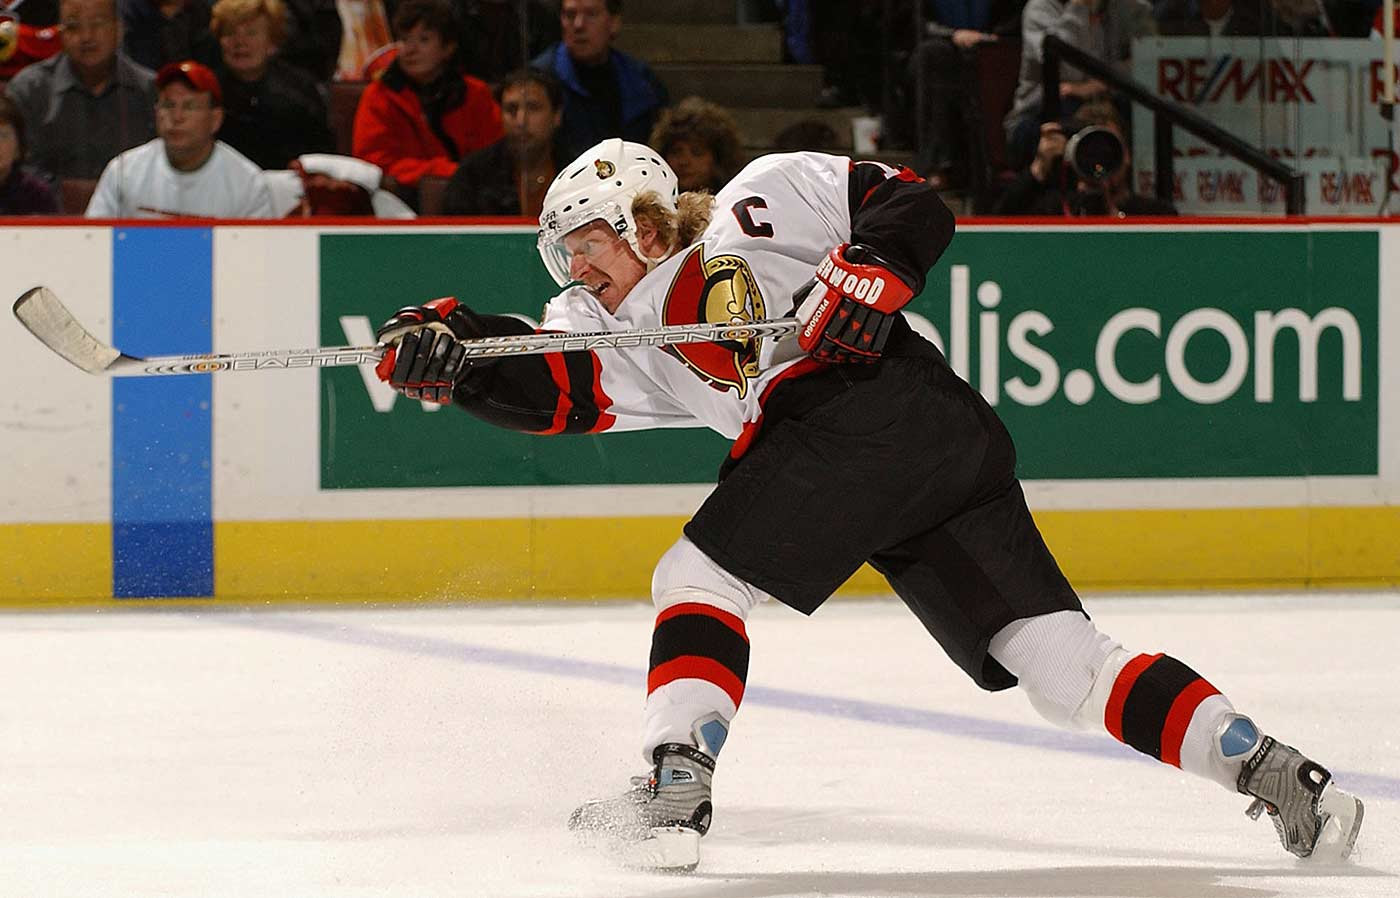 The Swedish star, who won the Calder Trophy in 1996, had produced four straight 70-point seasons and earned four All-Star Game nods with Ottawa when the lockout hit, and he picked up a career-high 103 points in 2005-06. He also won an Olympic gold medal for Sweden in 2006, one of his five appearances at the Games.